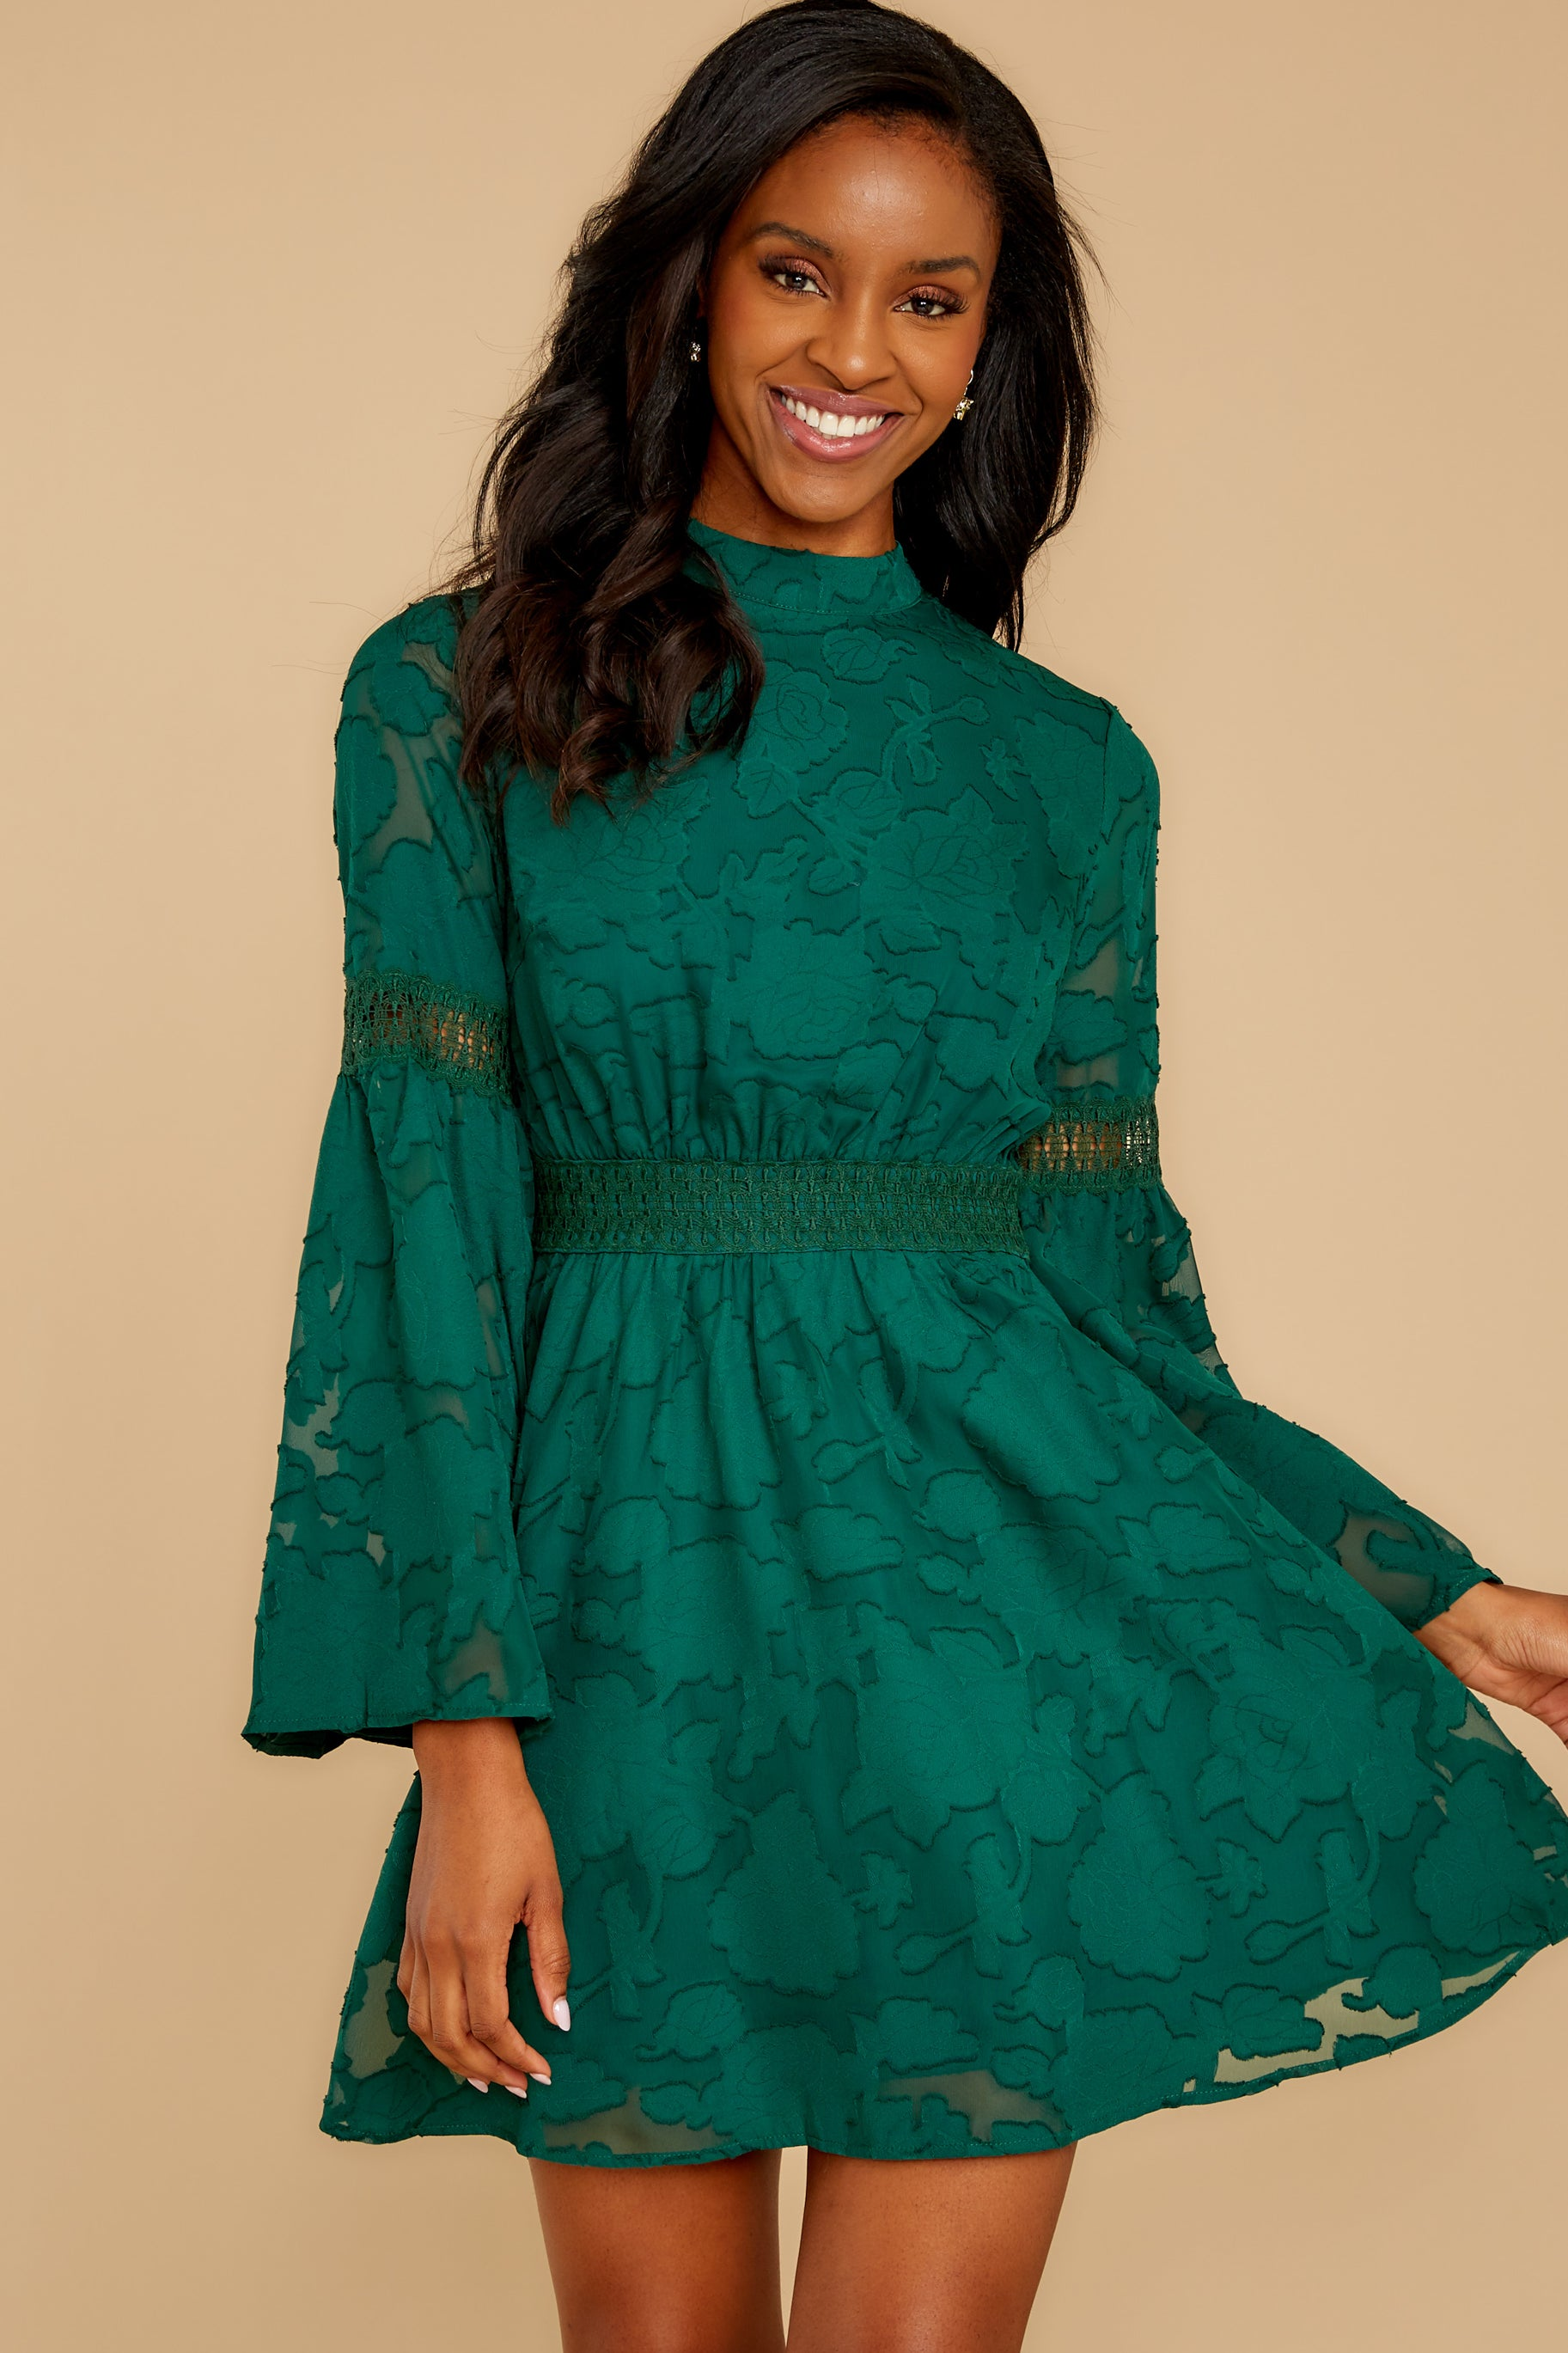 4 Love You More Emerald Green Lace Dress at reddressboutique.com